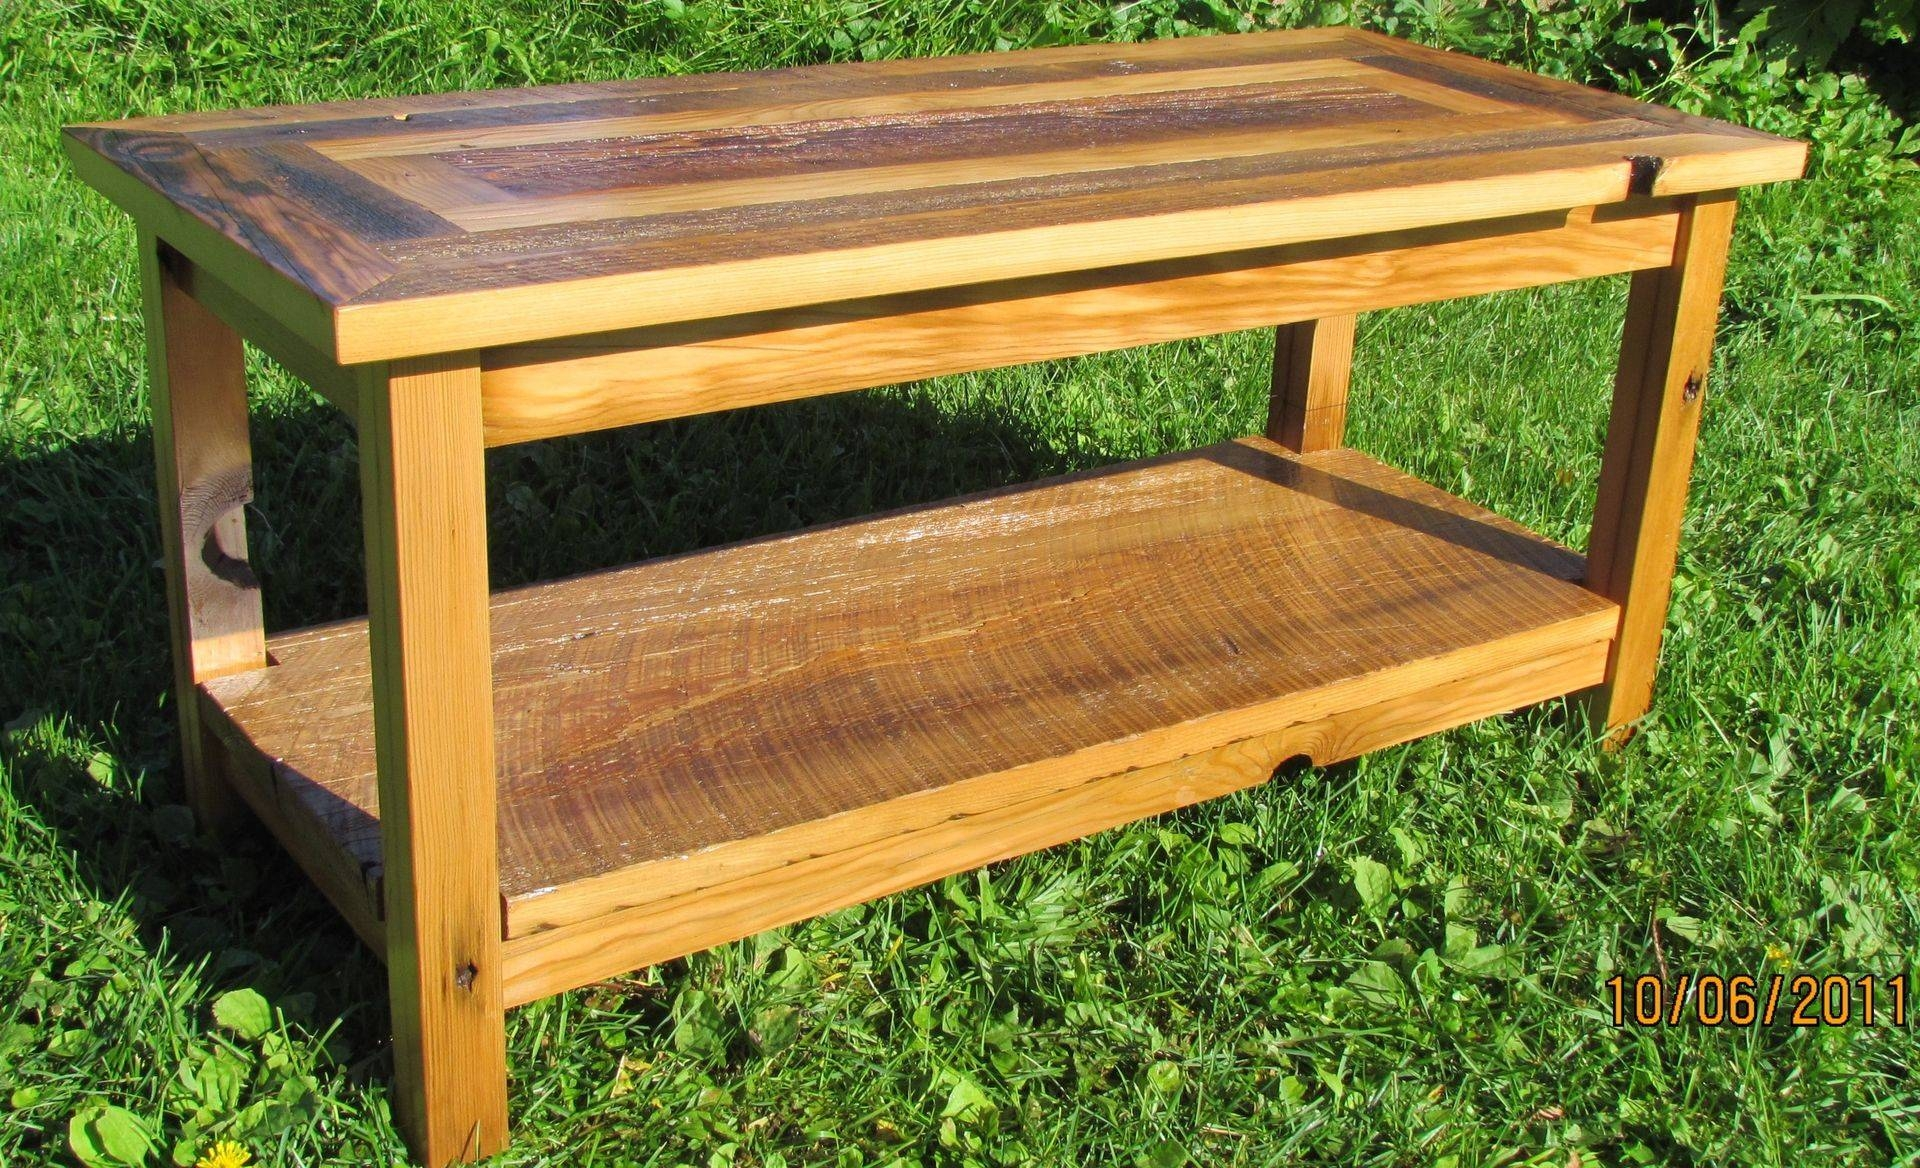 Handmade Reclaimed Barnwood Coffee Table With Matching End Tables intended for Coffee Table With Matching End Tables (Image 18 of 30)